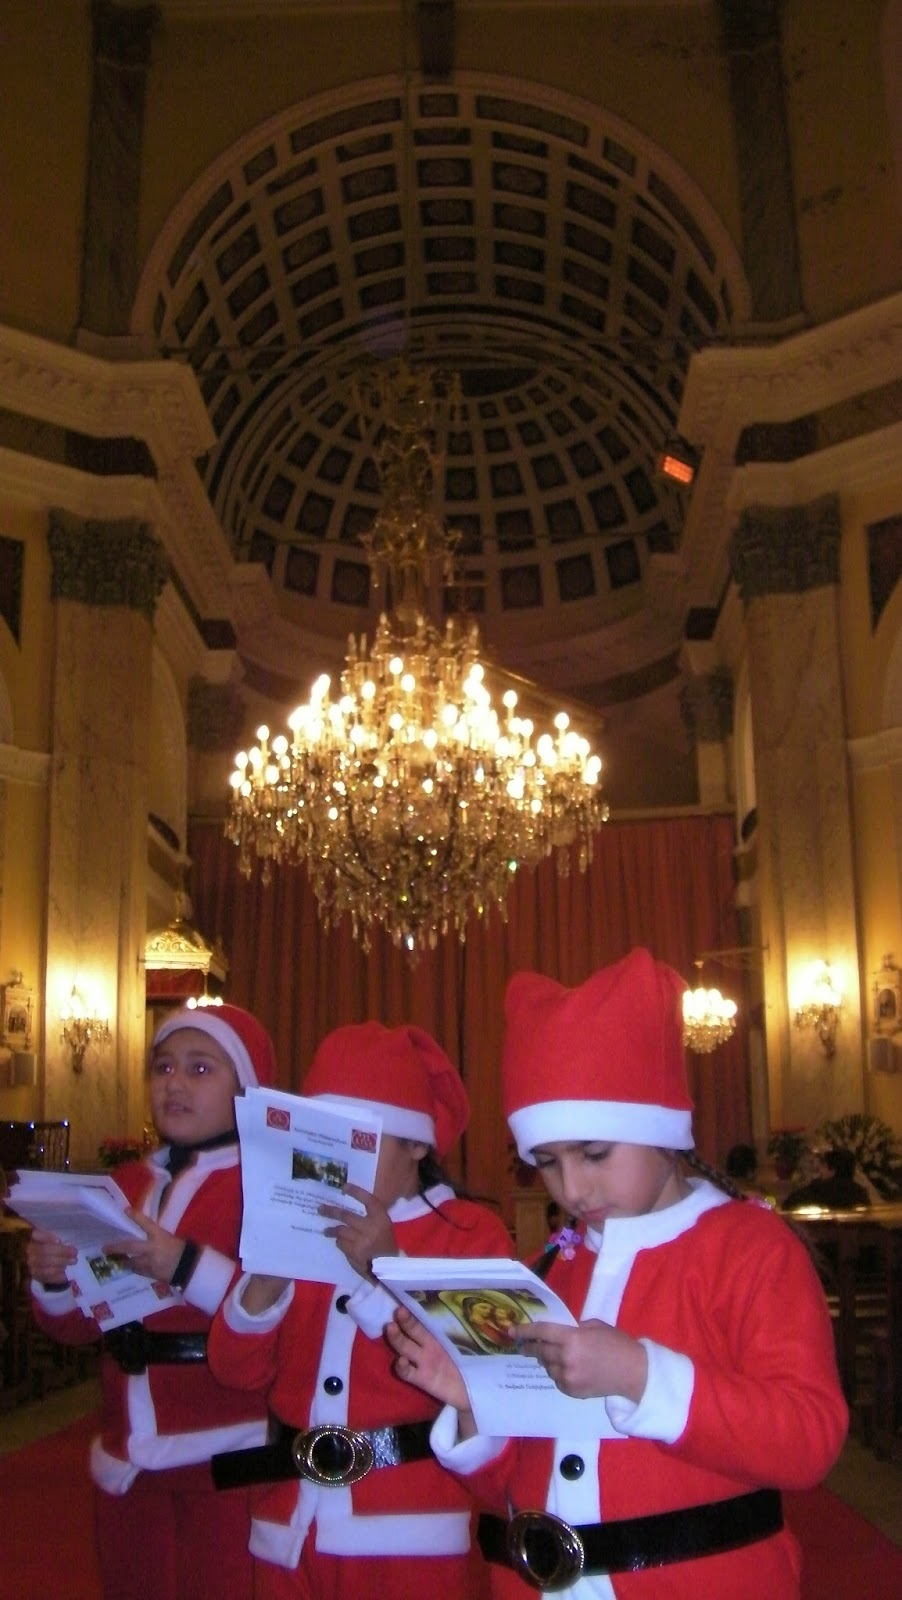 christmas in istanbul lale s uuml rmen aran but rather an interfaith speech emphasizing moral values and similarities between religions i liked it i assume it was a sermon that many people would